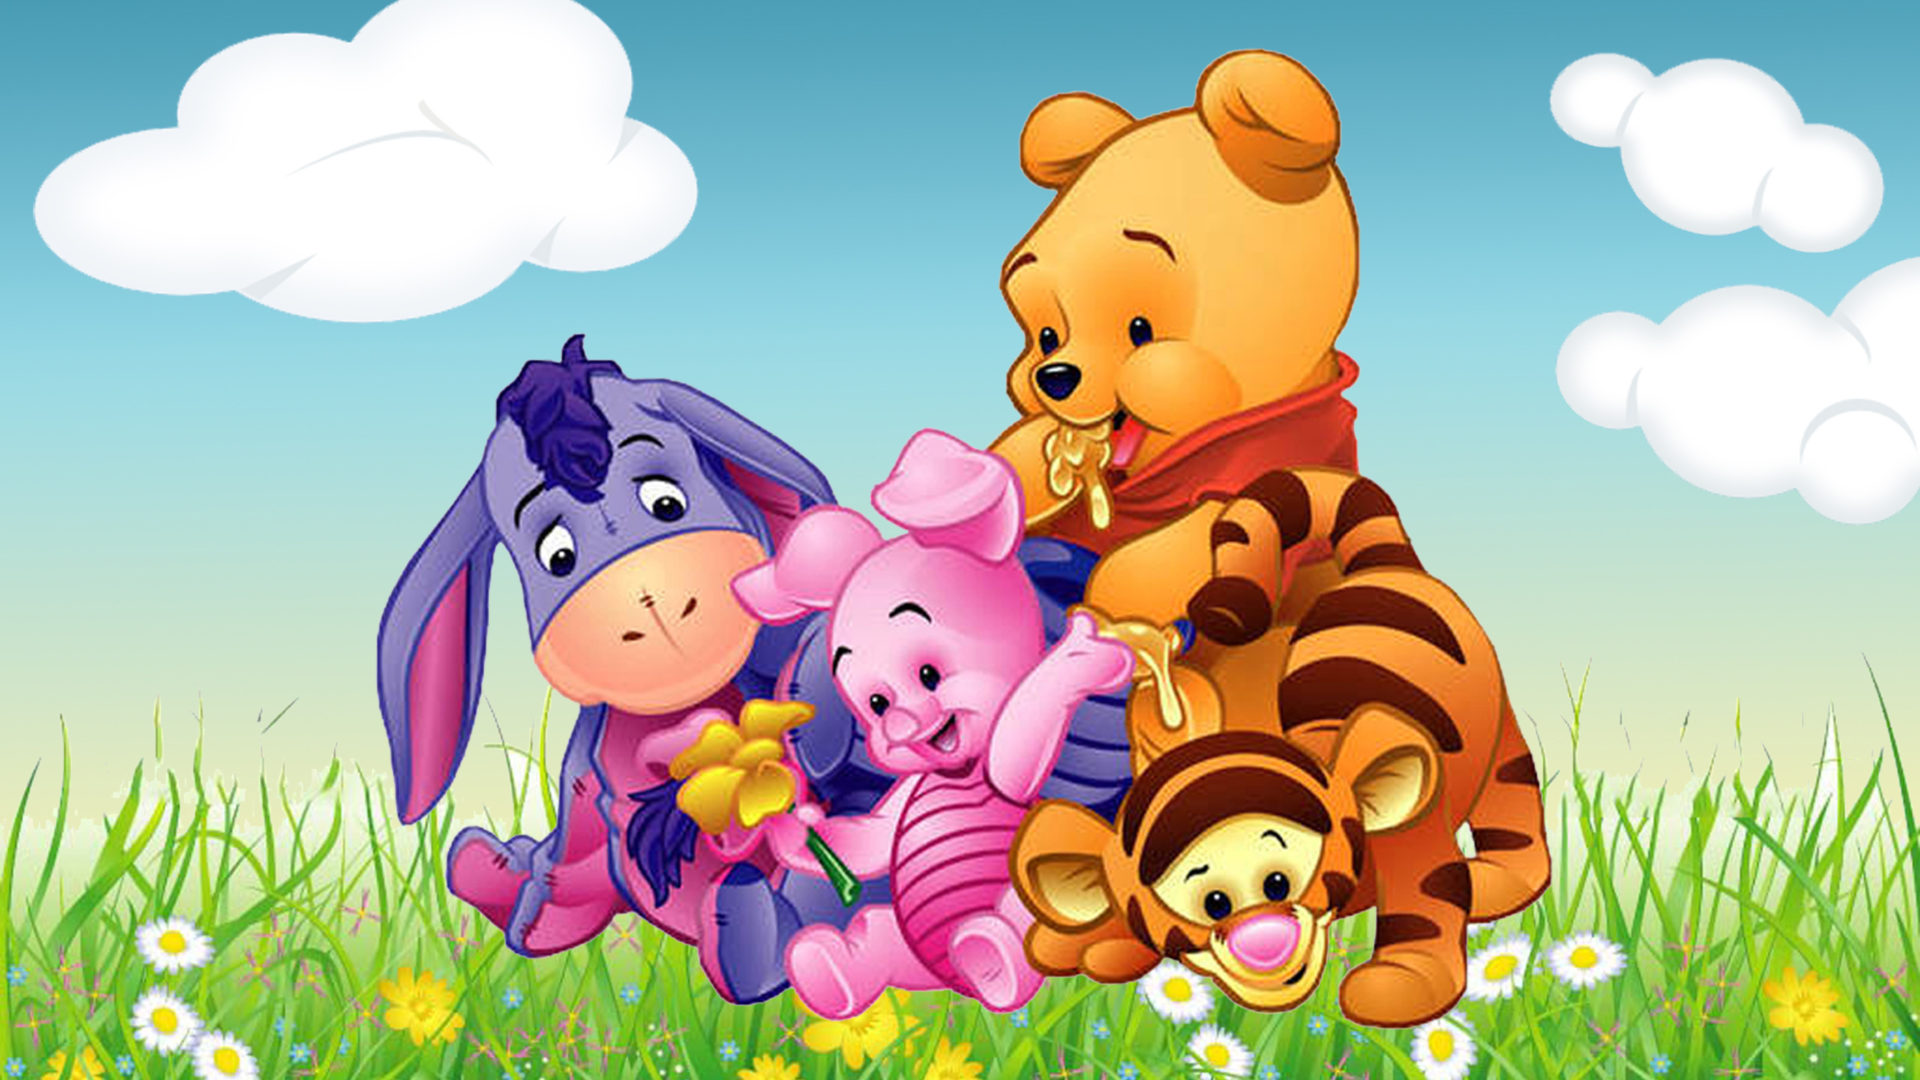 Images Of Cute Babies Wallpaper Free Download Cartoon Winnie The Pooh Tigger Piglet And Eeyore Babies Hd